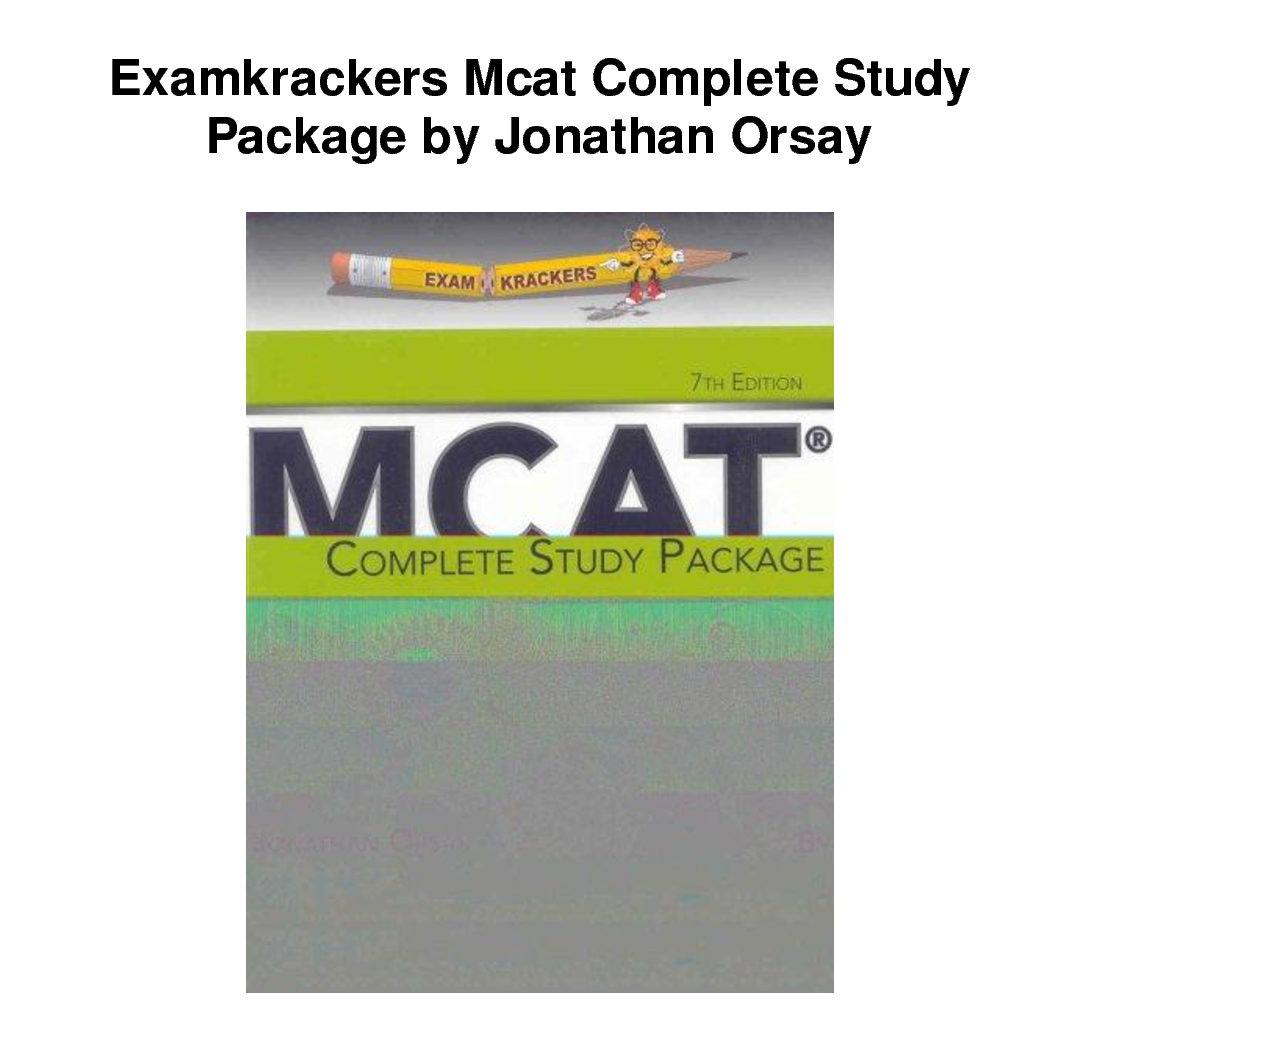 Most Recommended Books for Preparation of MCAT Test 2017